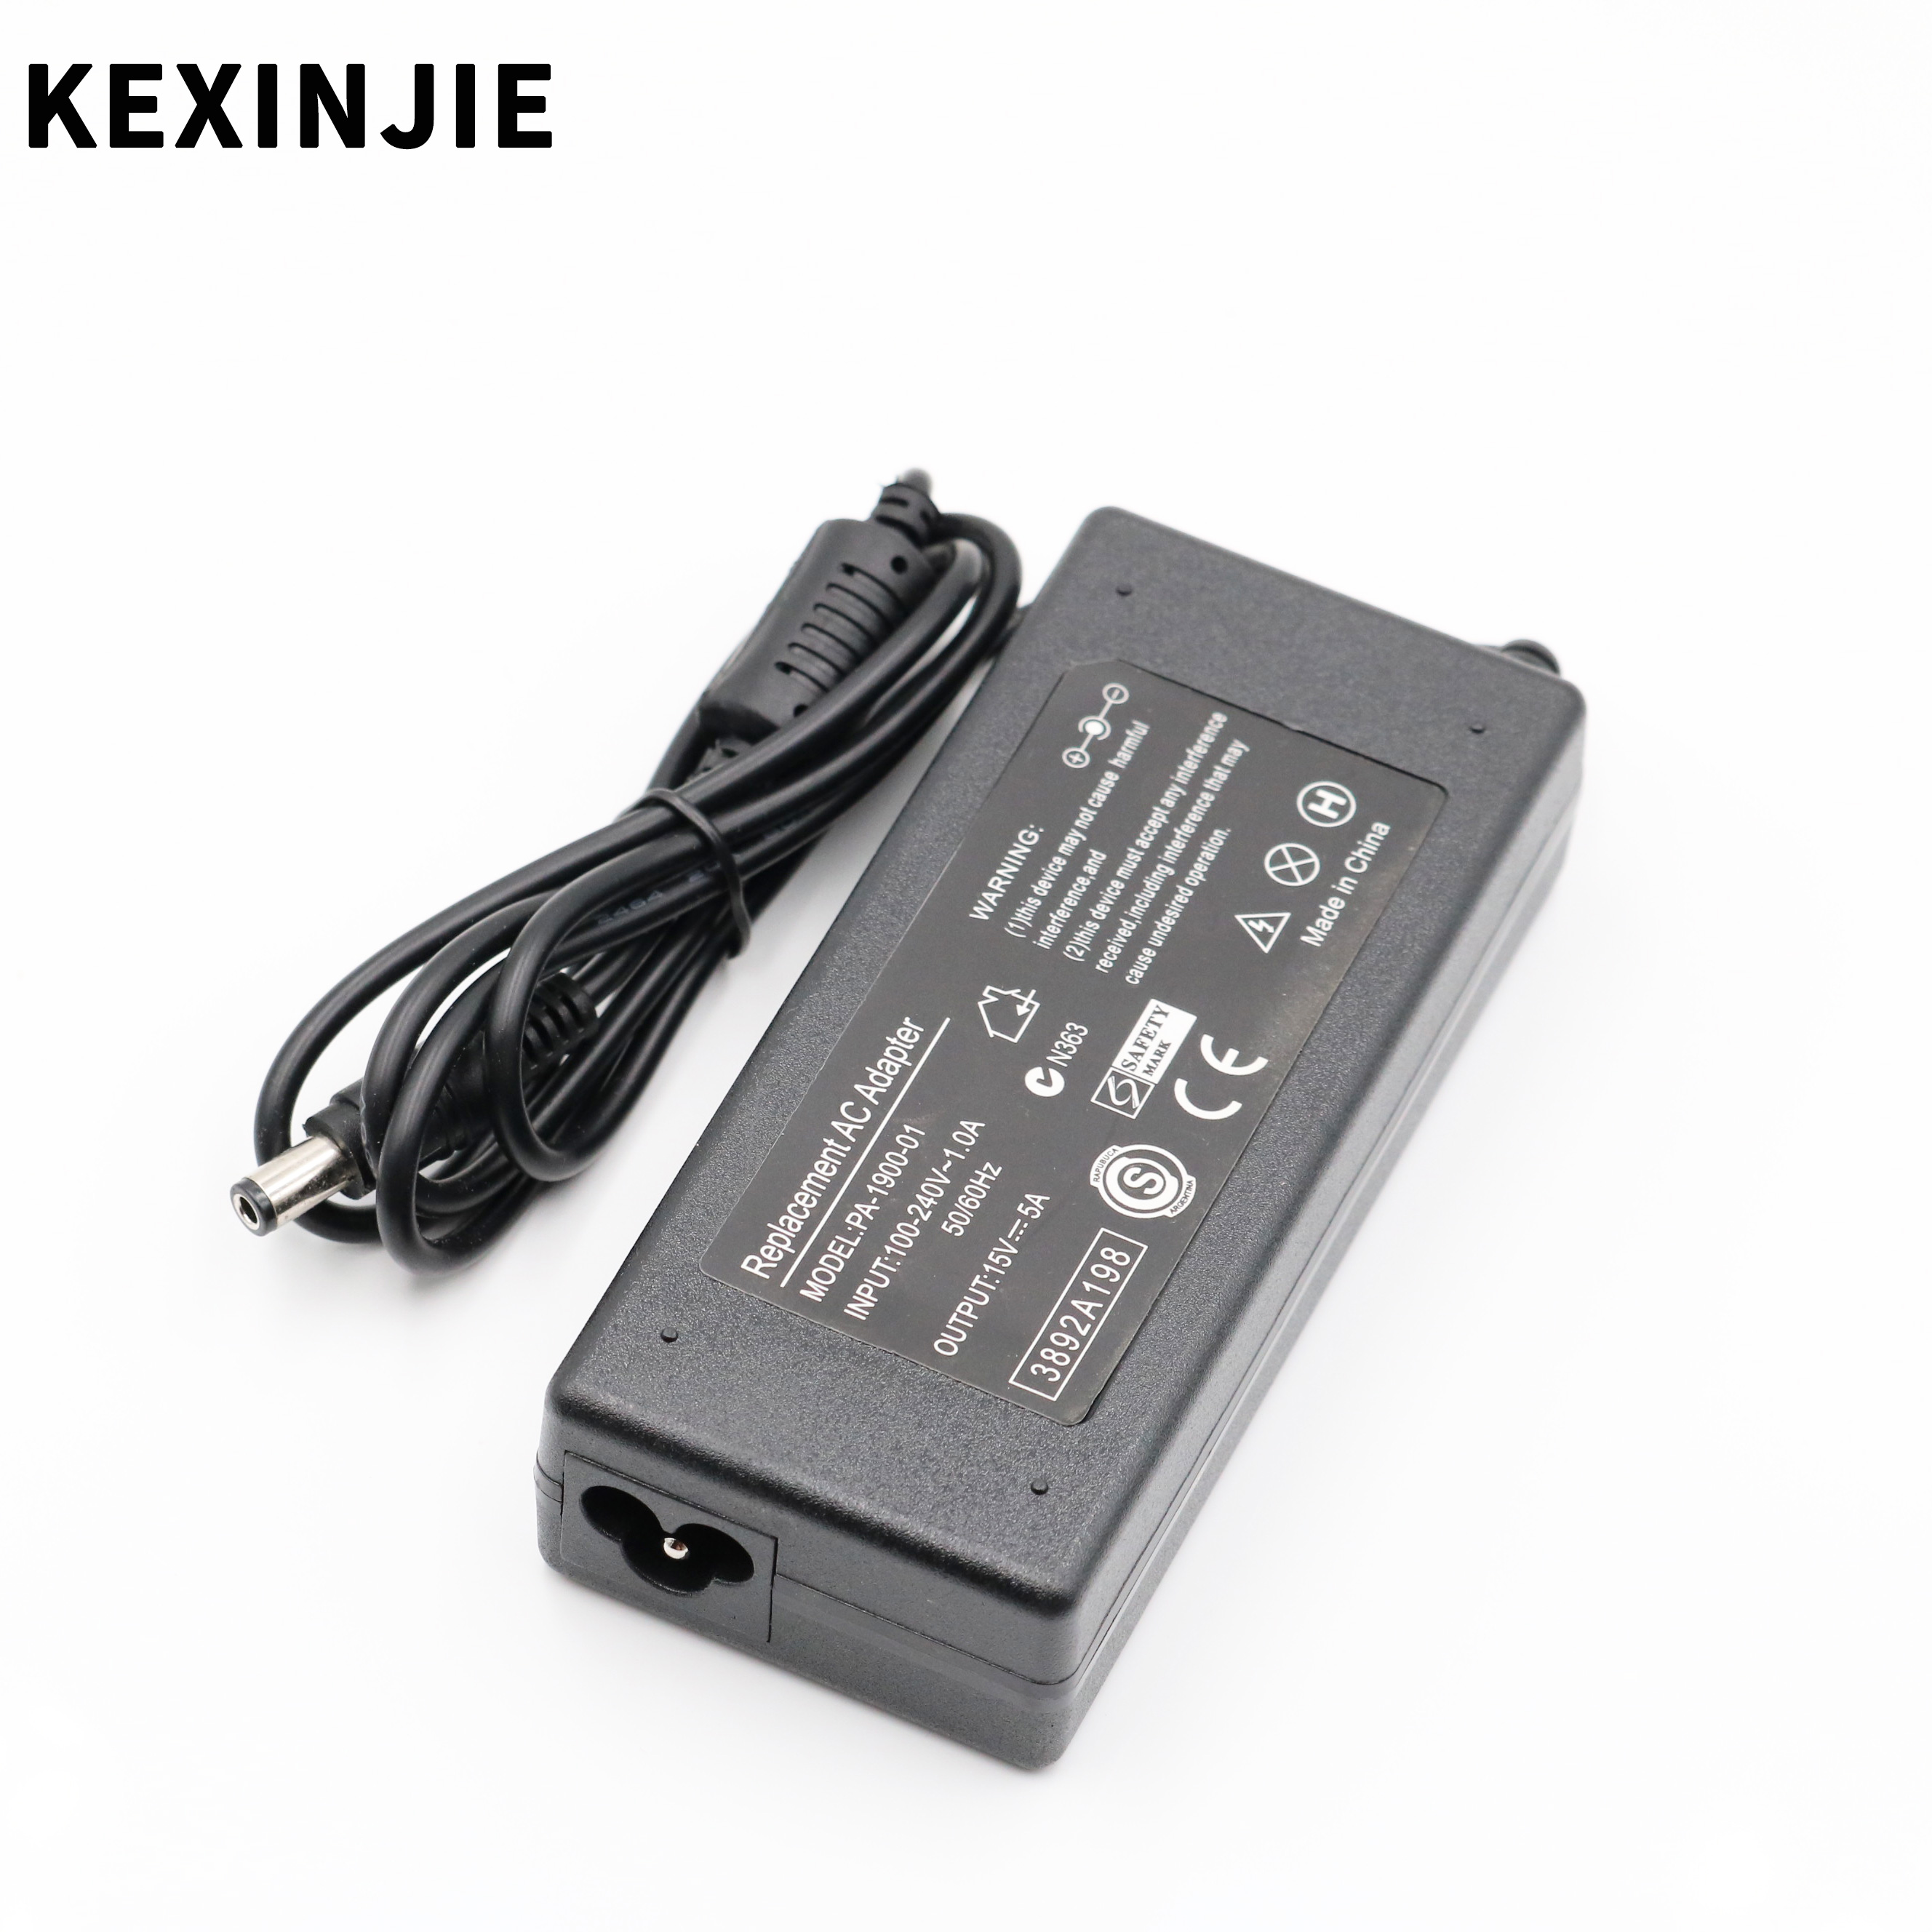 15V 5A 75W Ac Power Supply Adapter Battery Charger For Toshiba Portege R502 R505 R600 R501 Tecra A11 M11 S11